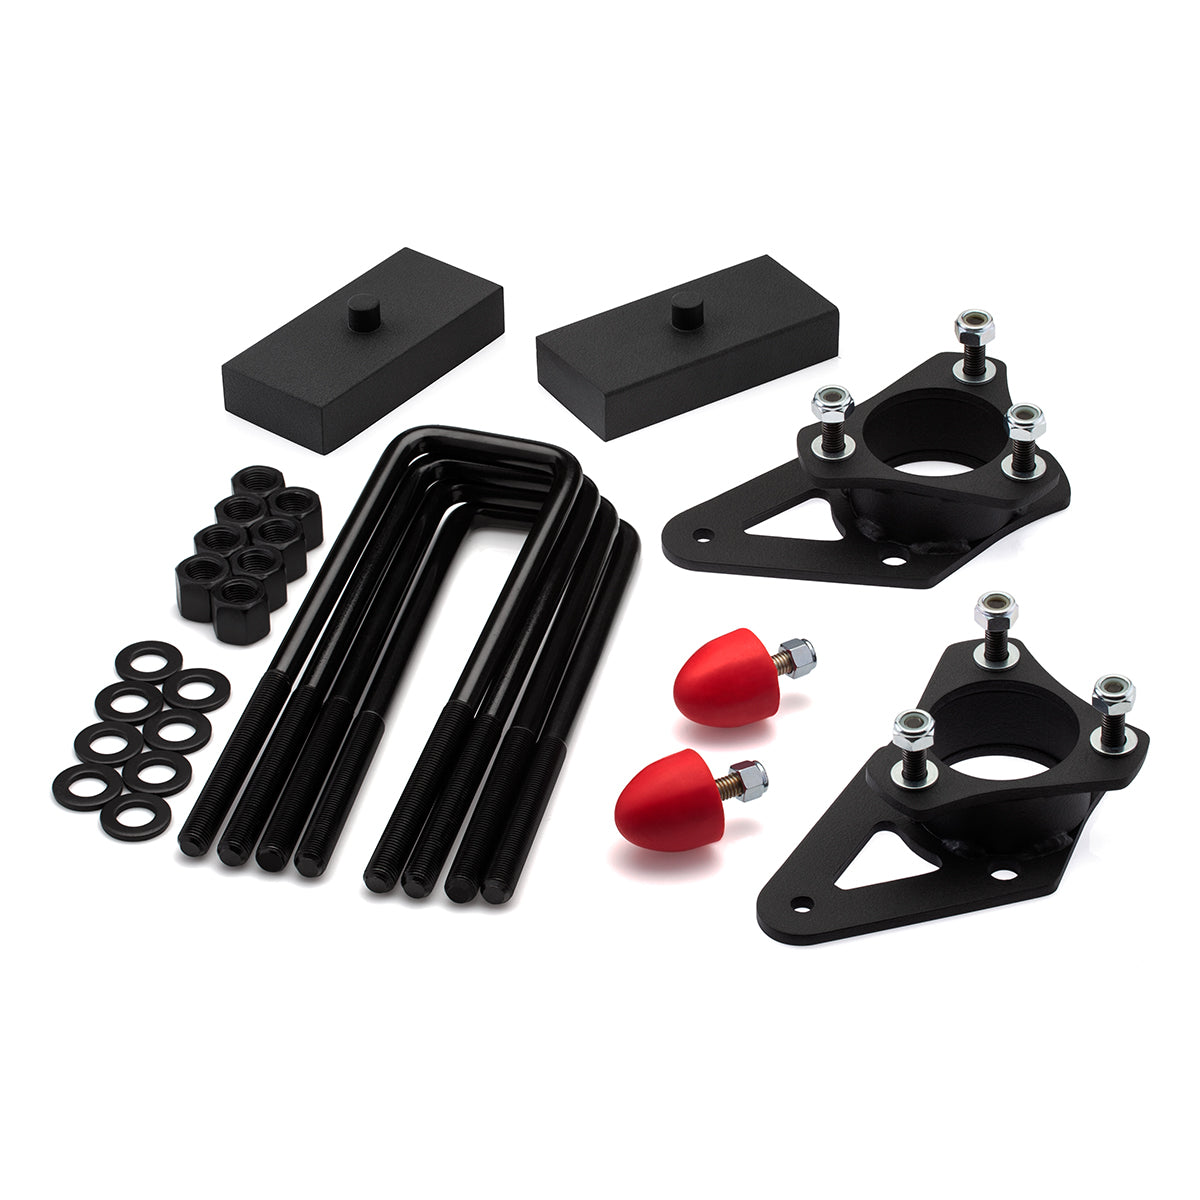 2005-2020 Nissan Frontier Full Lift Kit with Bump Stops